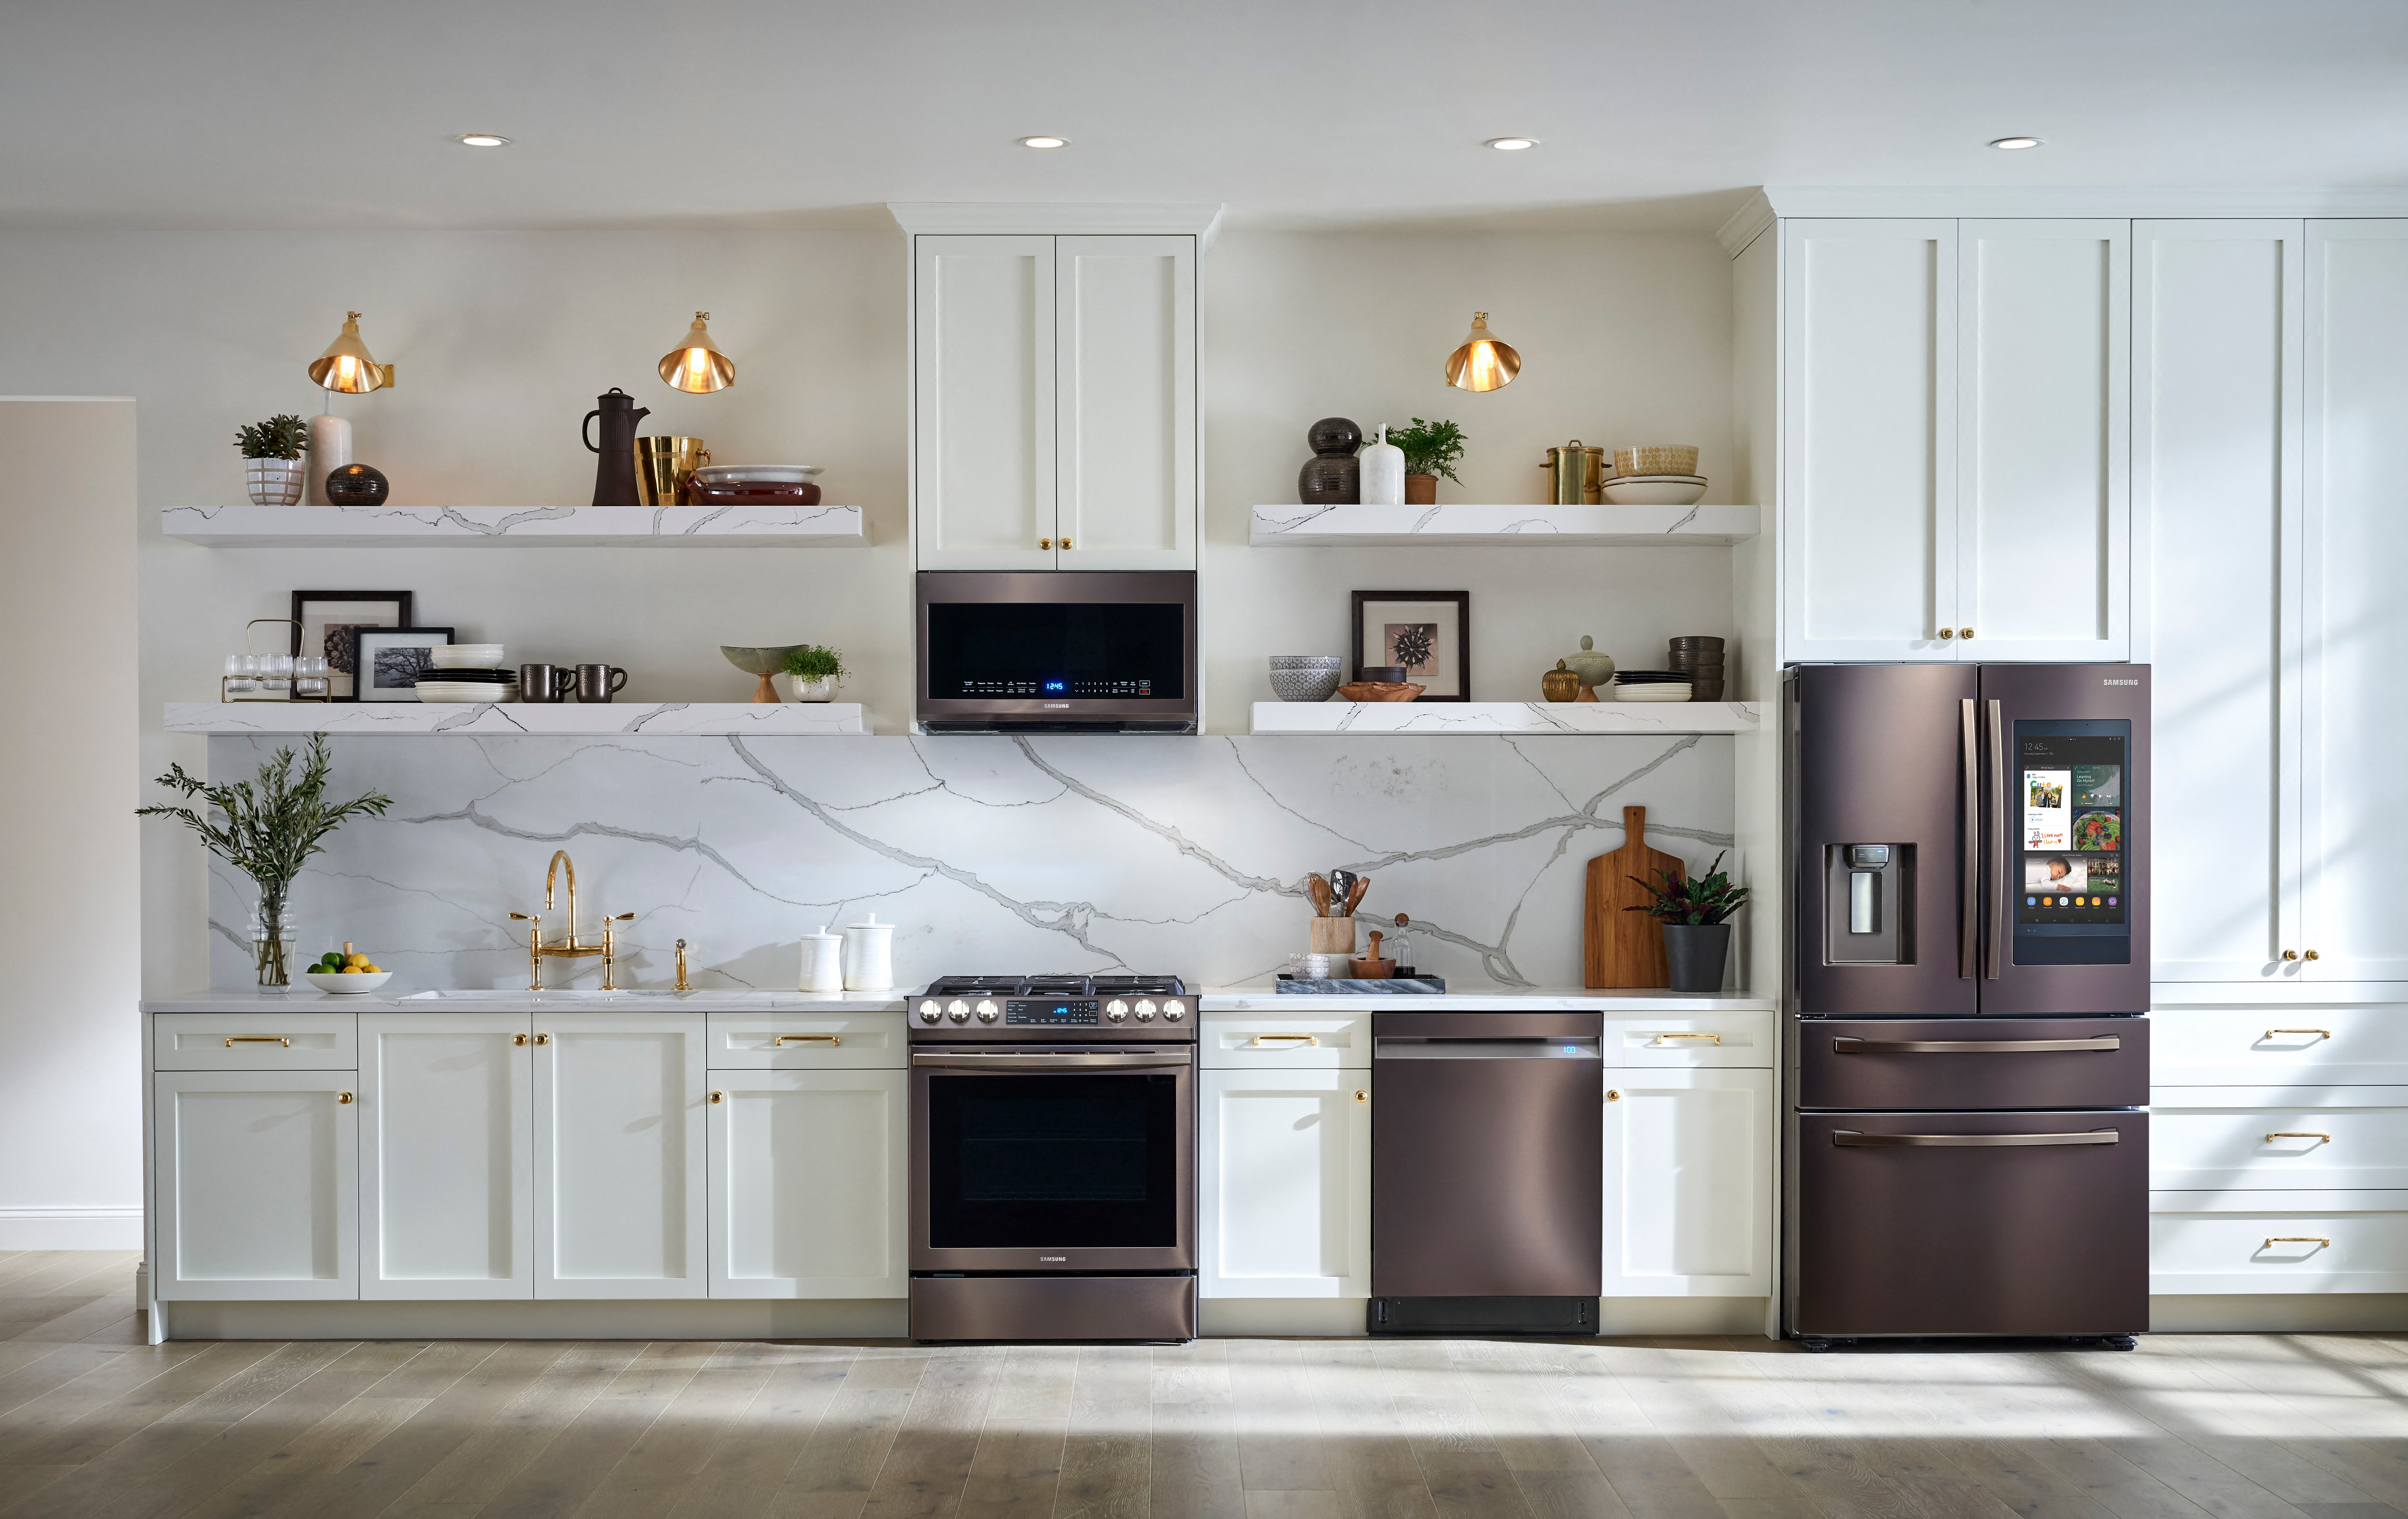 2020 Holiday Gift Guide - Home Appliance